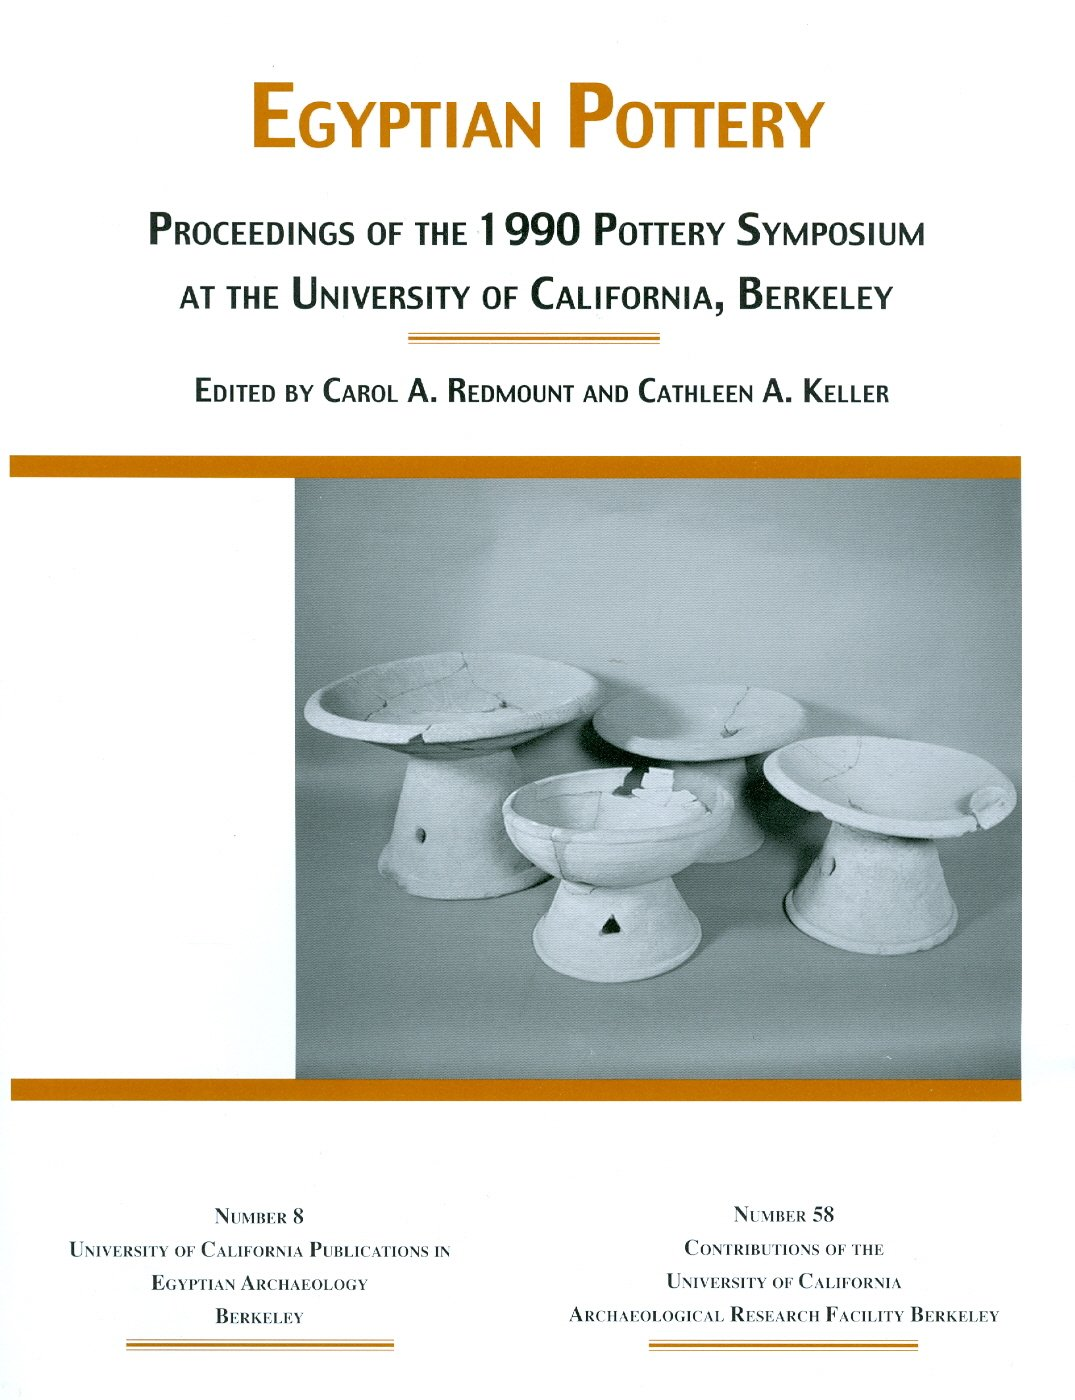 Download Egyptian Pottery: Proceedings of the 1990 Pottery Symposium at the University of California, Berkeley (Univ.of California Publ.in Egyptian Archaeology; V.8) pdf epub